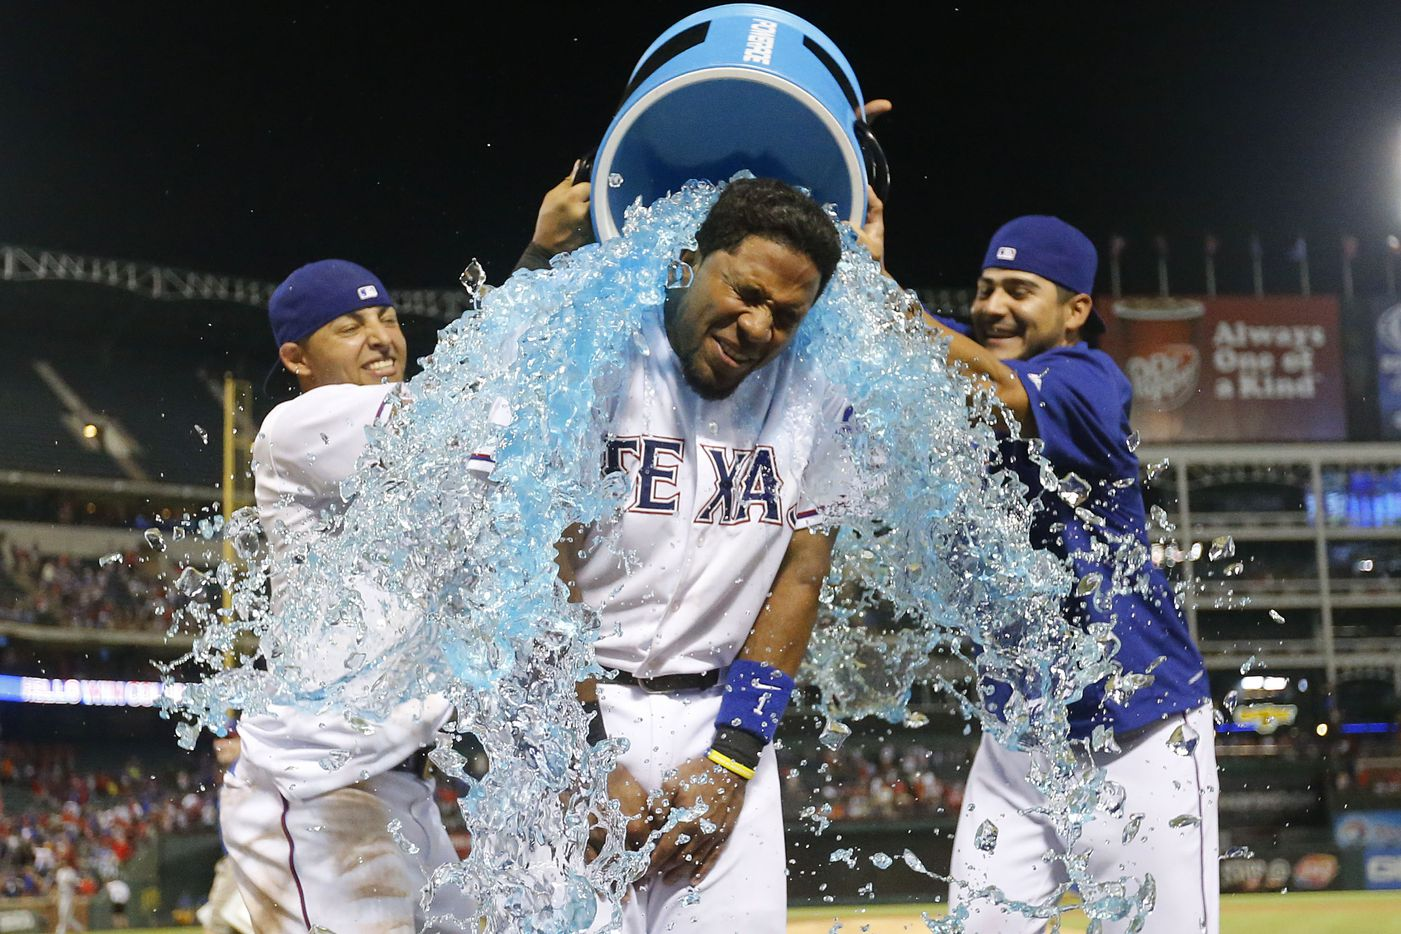 Texas Rangers shortstop Elvis Andrus (1) gets an ice-bath from Texas Rangers second baseman Rougned Odor (12, left) and Texas Rangers starting pitcher Martin Perez (33, right) after the Rangers defeated the Giants 6-3 at Globe Life Ballpark in Arlington, Texas on Friday, July, 31, 2015. (Michael Reaves/The Dallas Morning News) 08082015xPUB